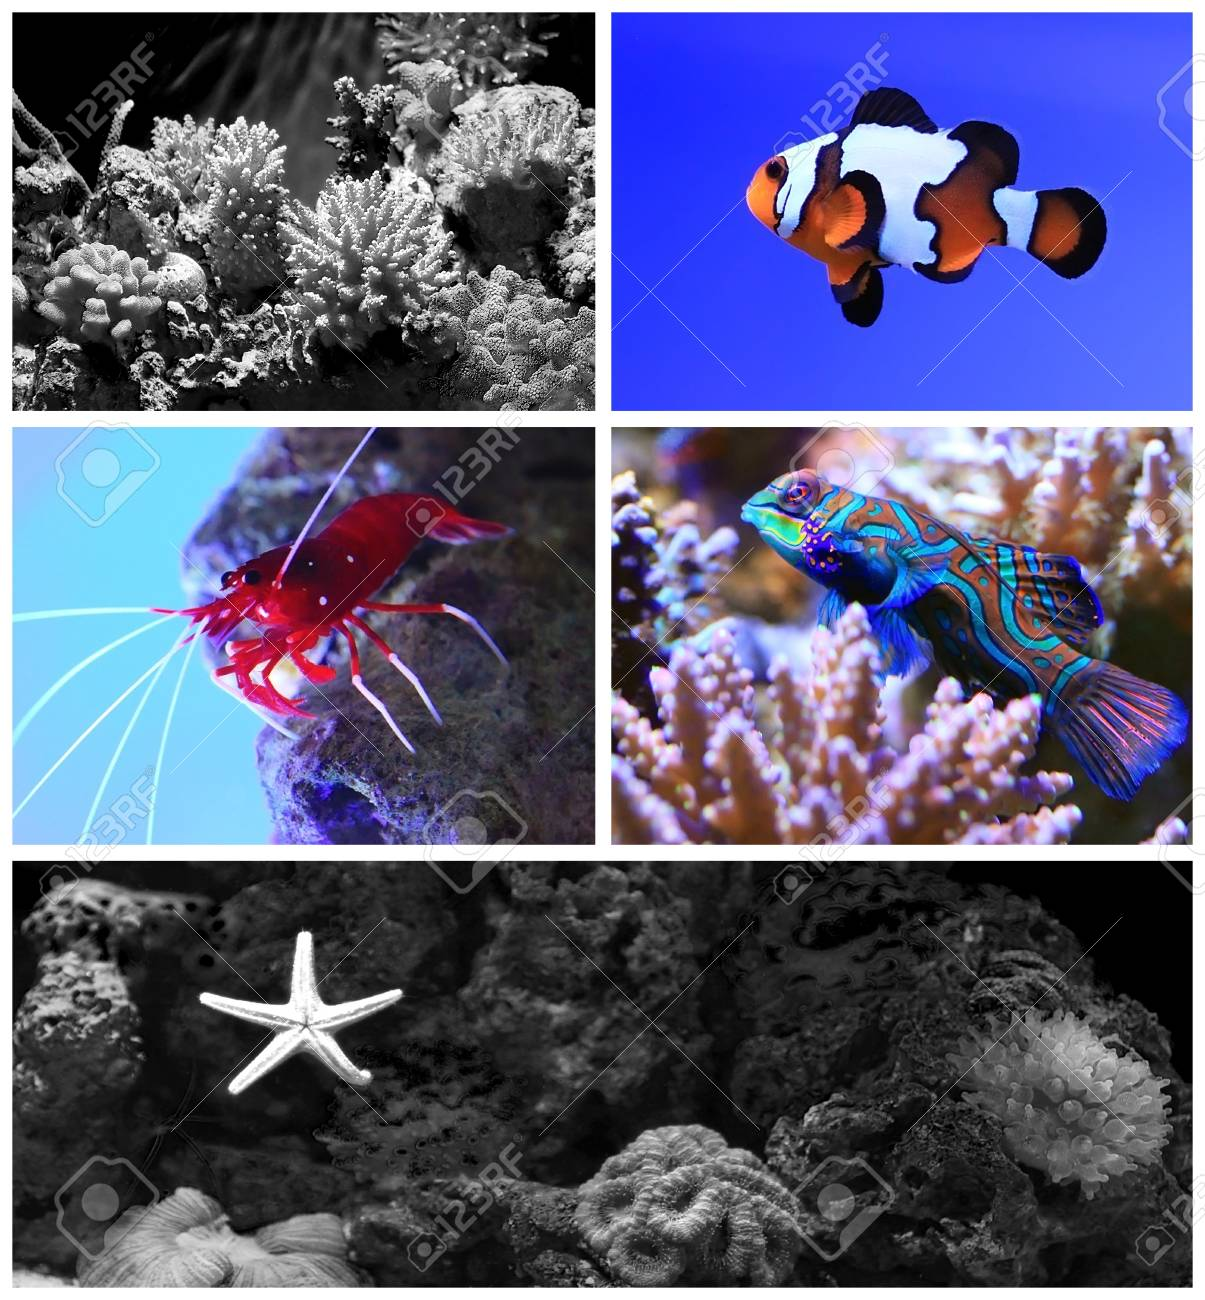 Tropical aquarium with coral reef and fish Stock Photo - 14039829